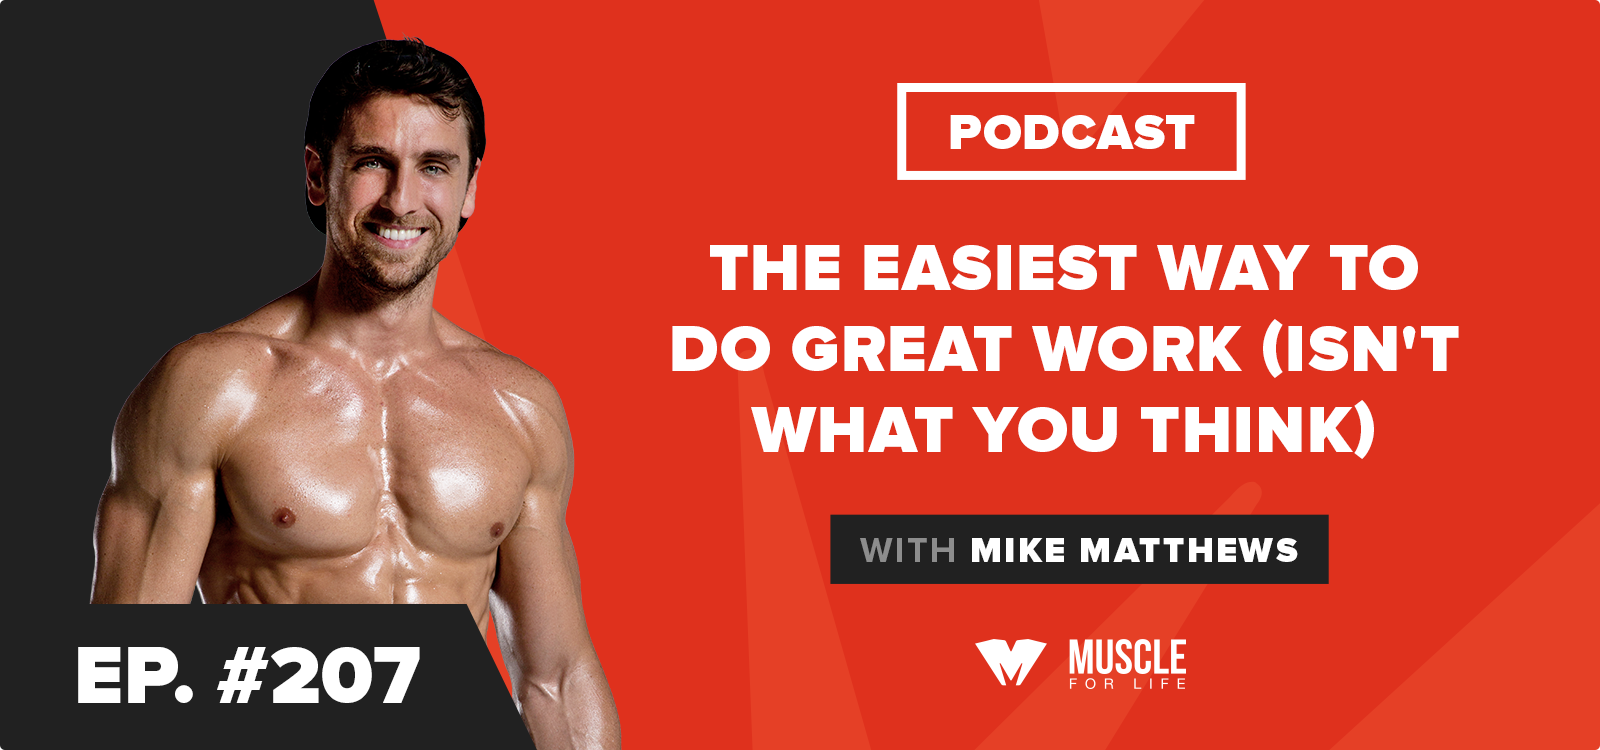 Motivation Monday: The Easiest Way to Do Great Work (Isn't What You Think)